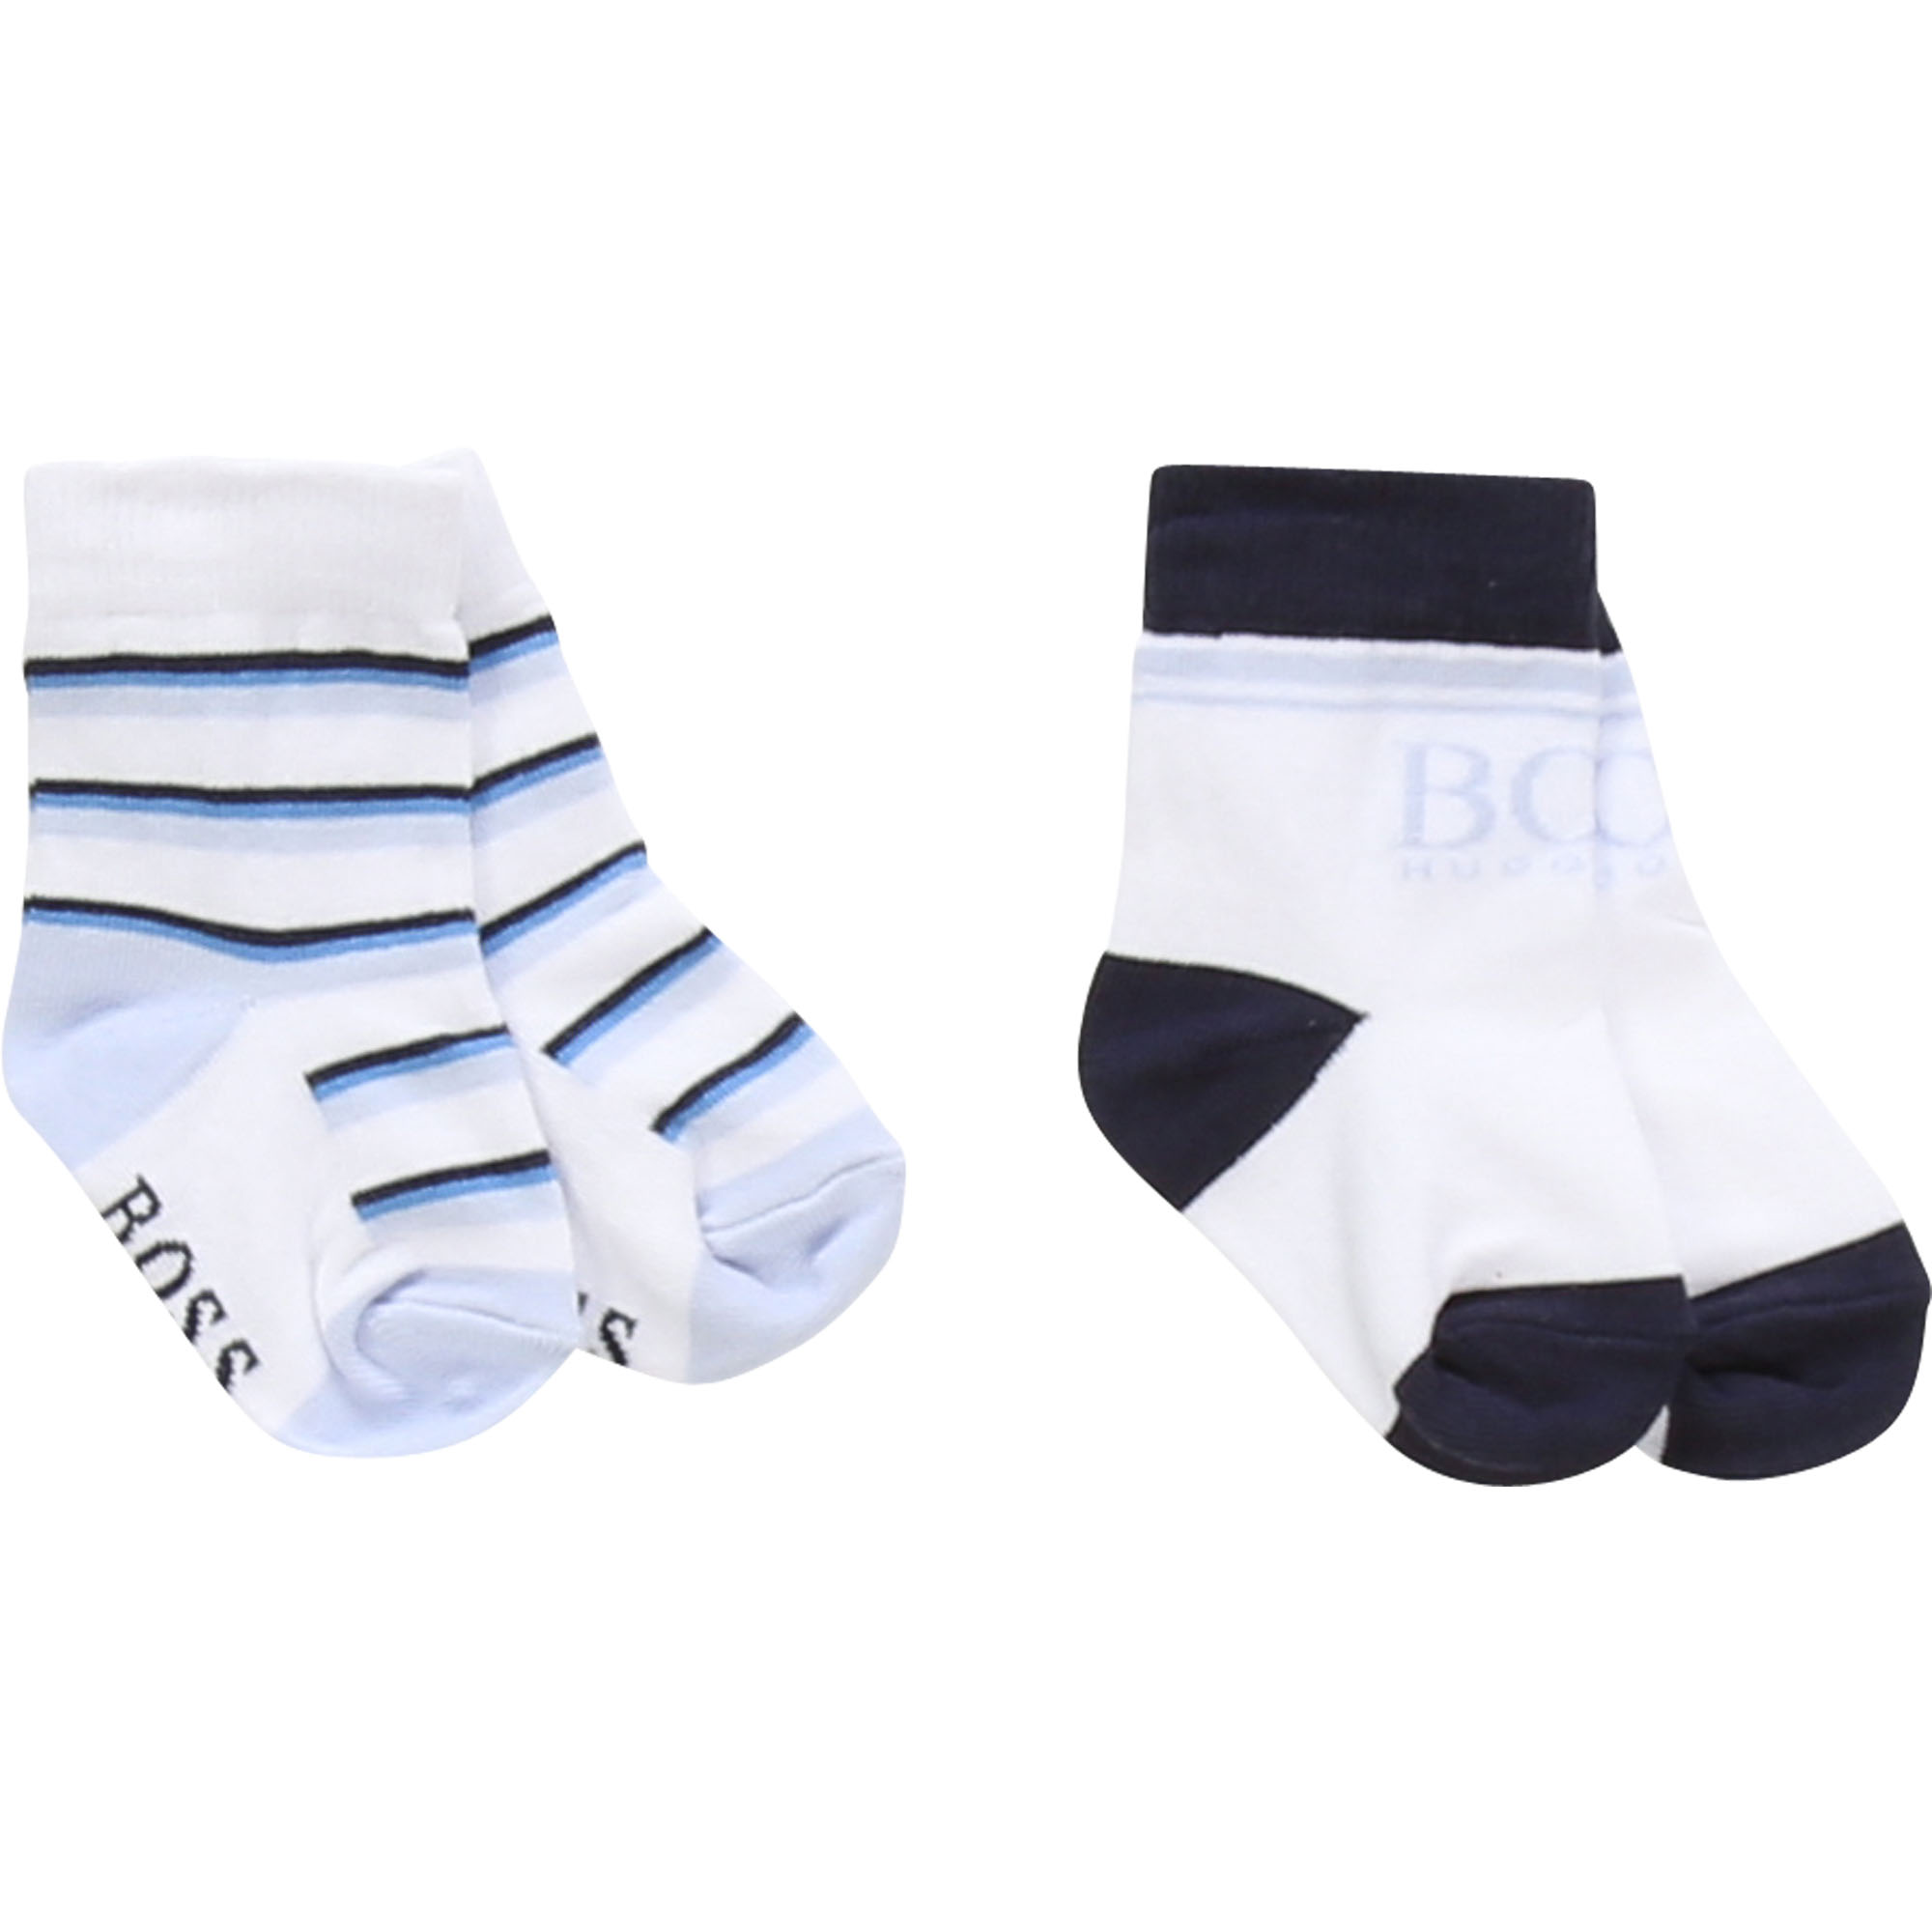 Pack of 2 pairs of socks BOSS for BOY